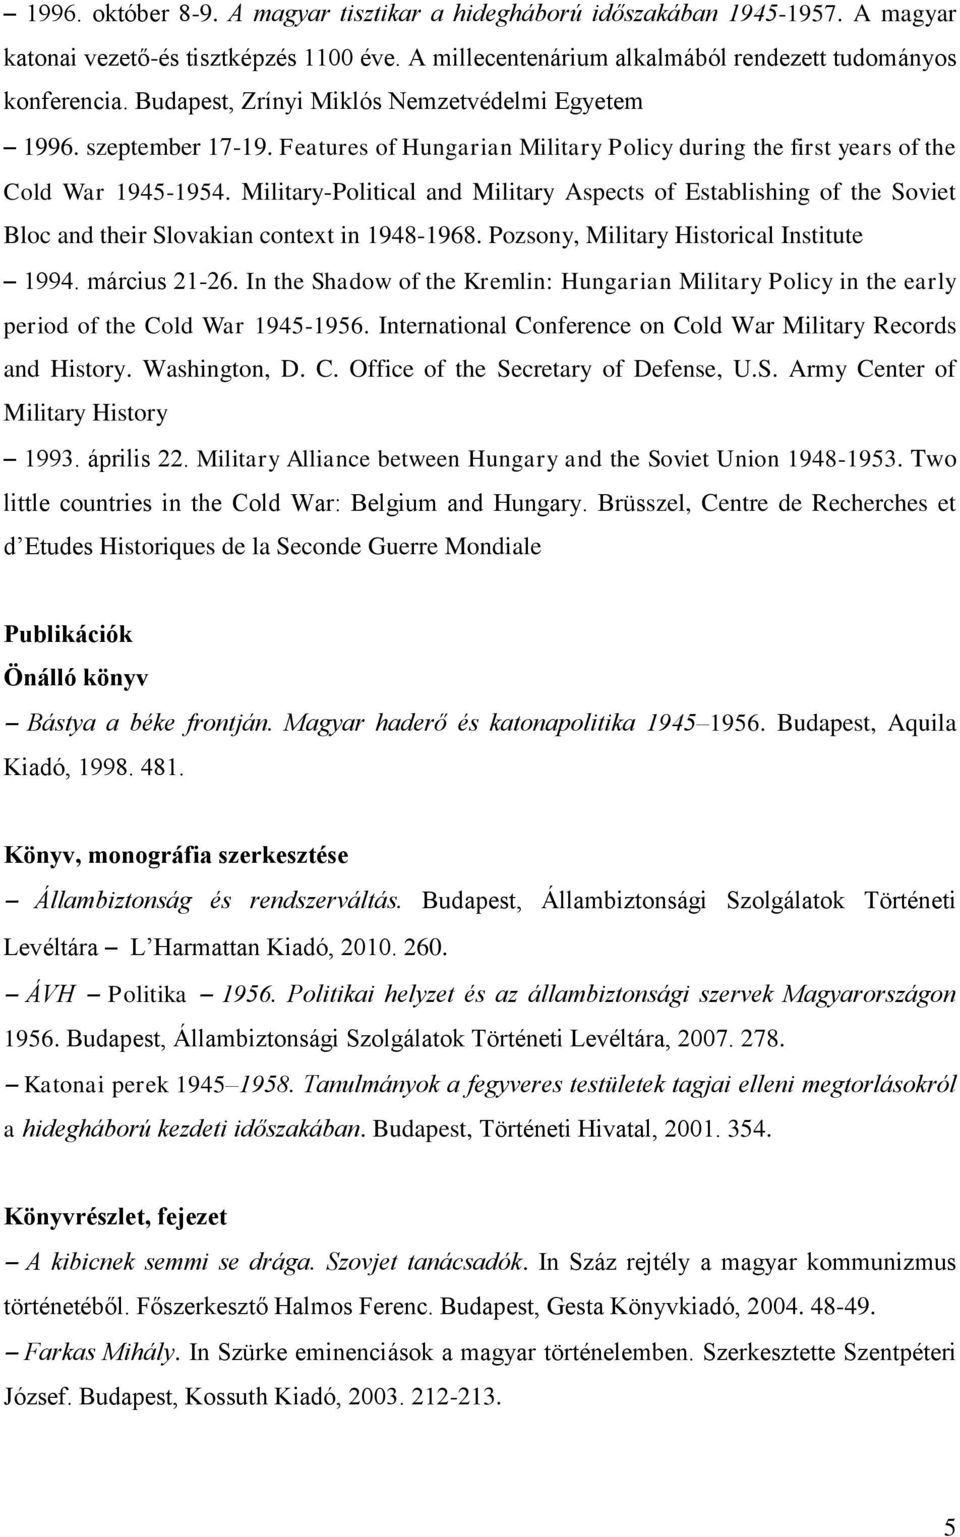 Military-Political and Military Aspects of Establishing of the Soviet Bloc and their Slovakian context in 1948-1968. Pozsony, Military Historical Institute 1994. március 21-26.